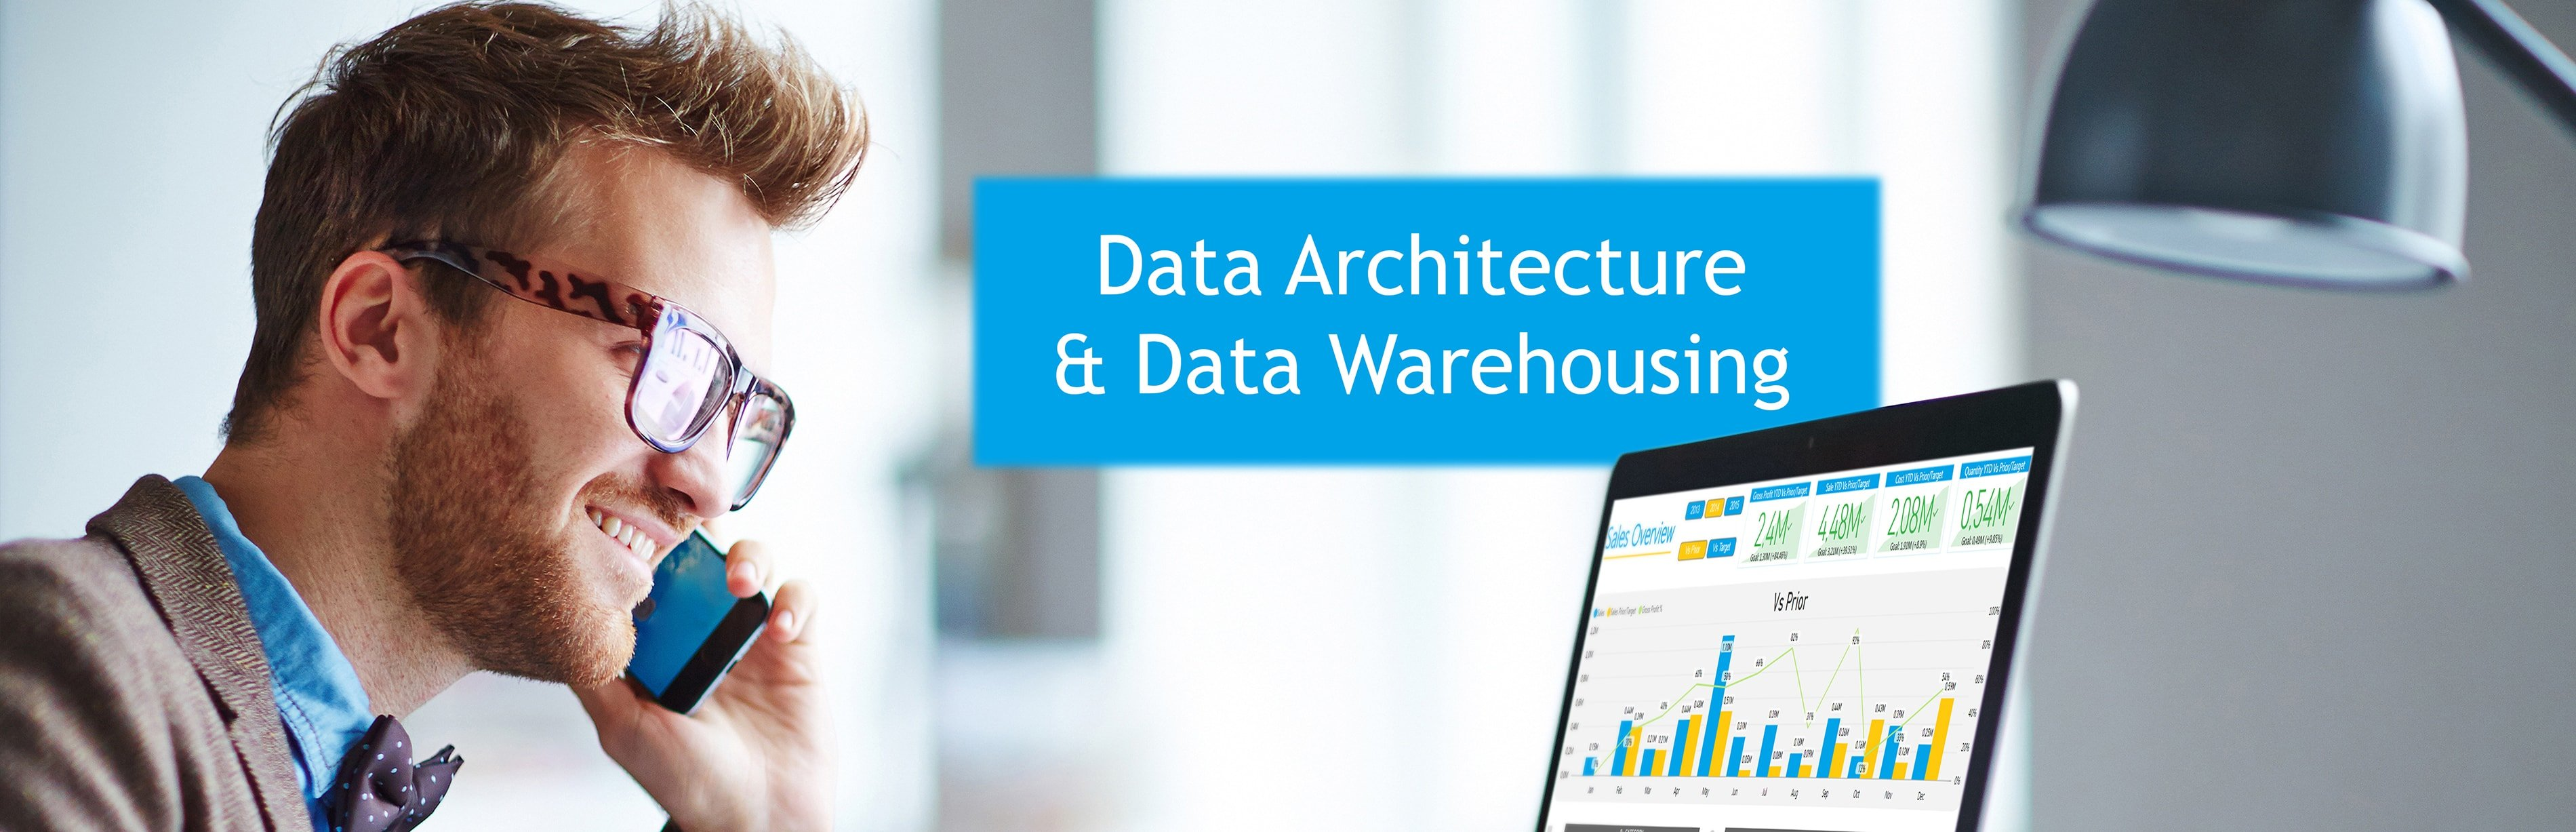 Data Bear Data warehousing banner